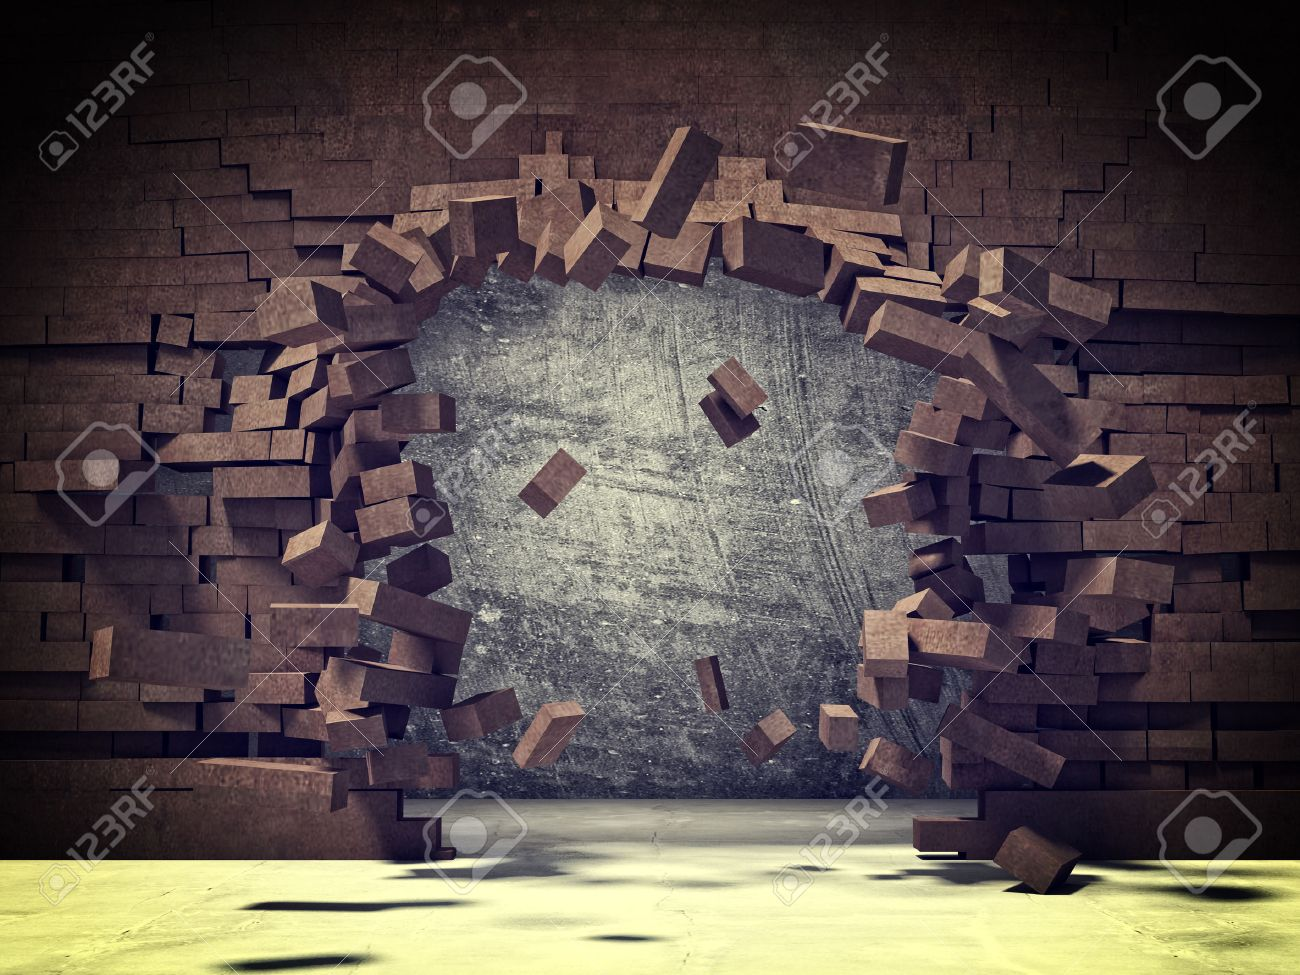 explosion of brick 3d wall - 41045764